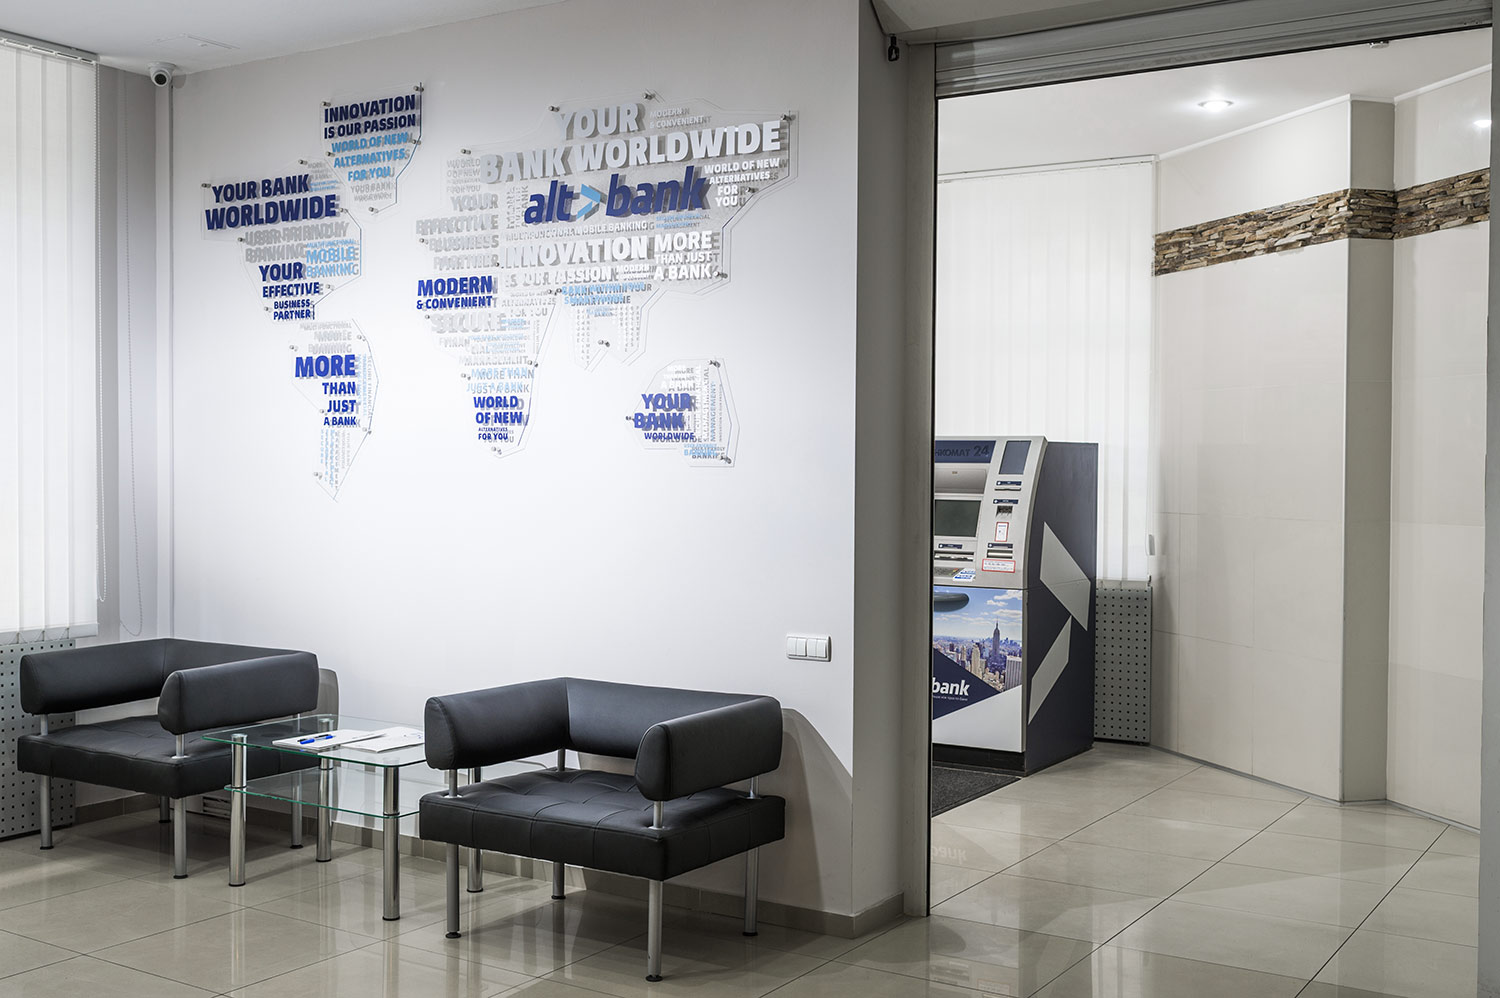 The bank branch interior design. The Altbank ATM. A transparent world map on the wall. Design of the Altbank ATM.